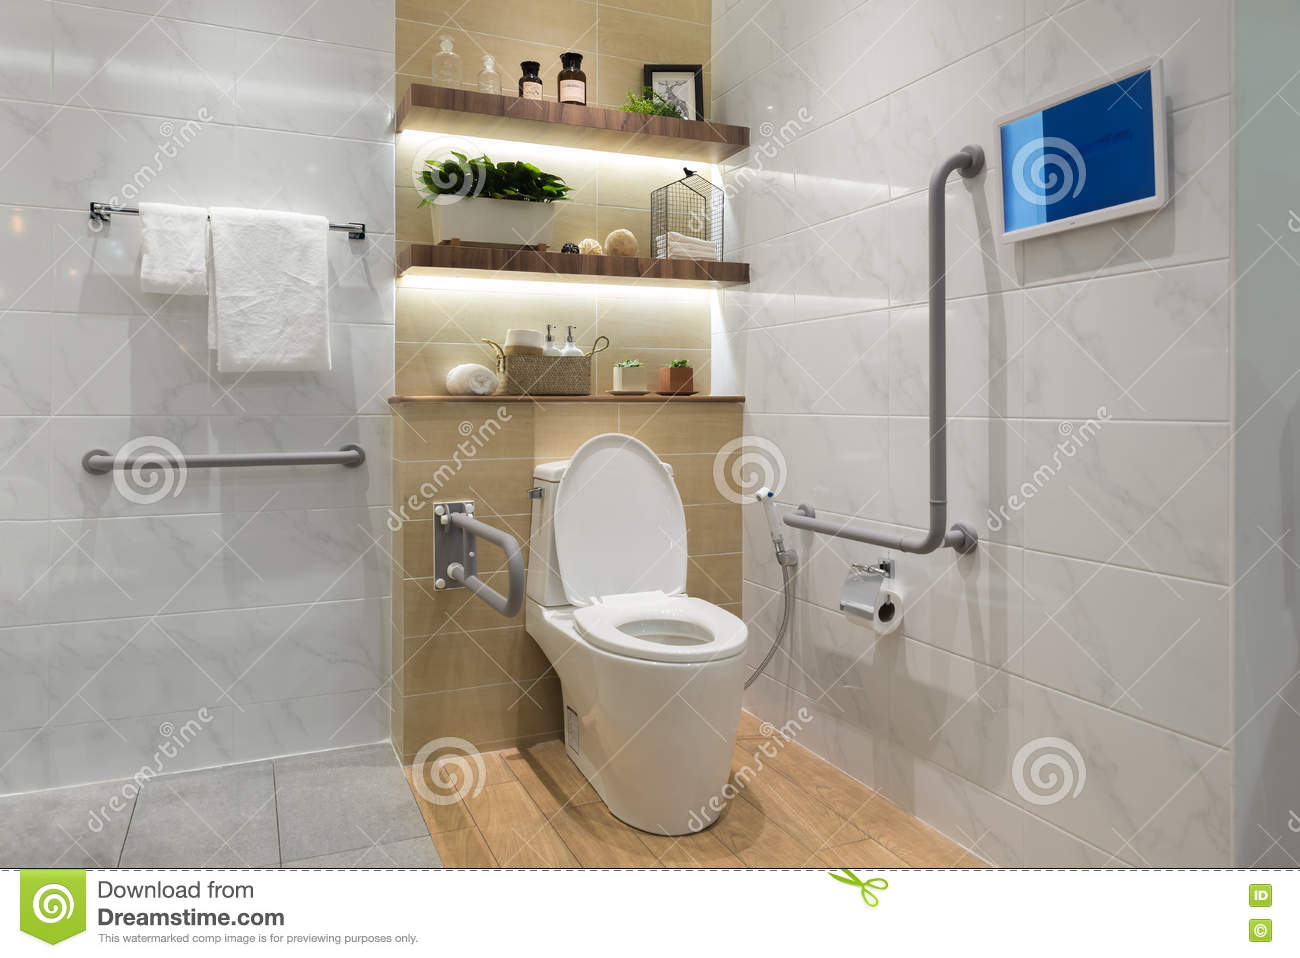 Interior of bathroom for the disabled or elderly people. =